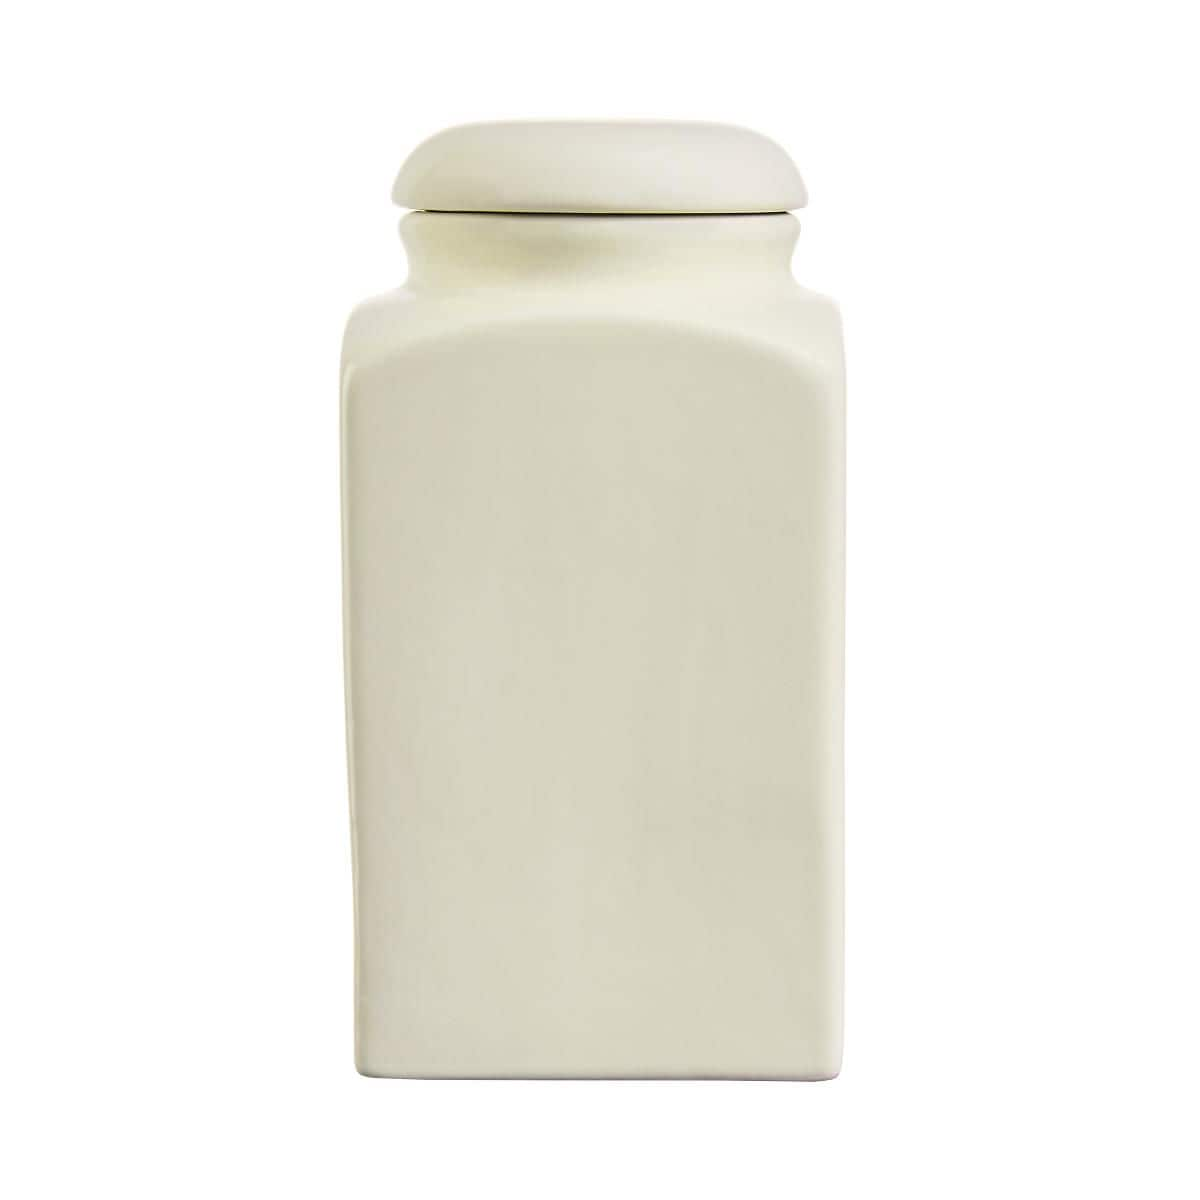 Butlers Mrs. Winterbottoms Mehldose 1,3 l creme